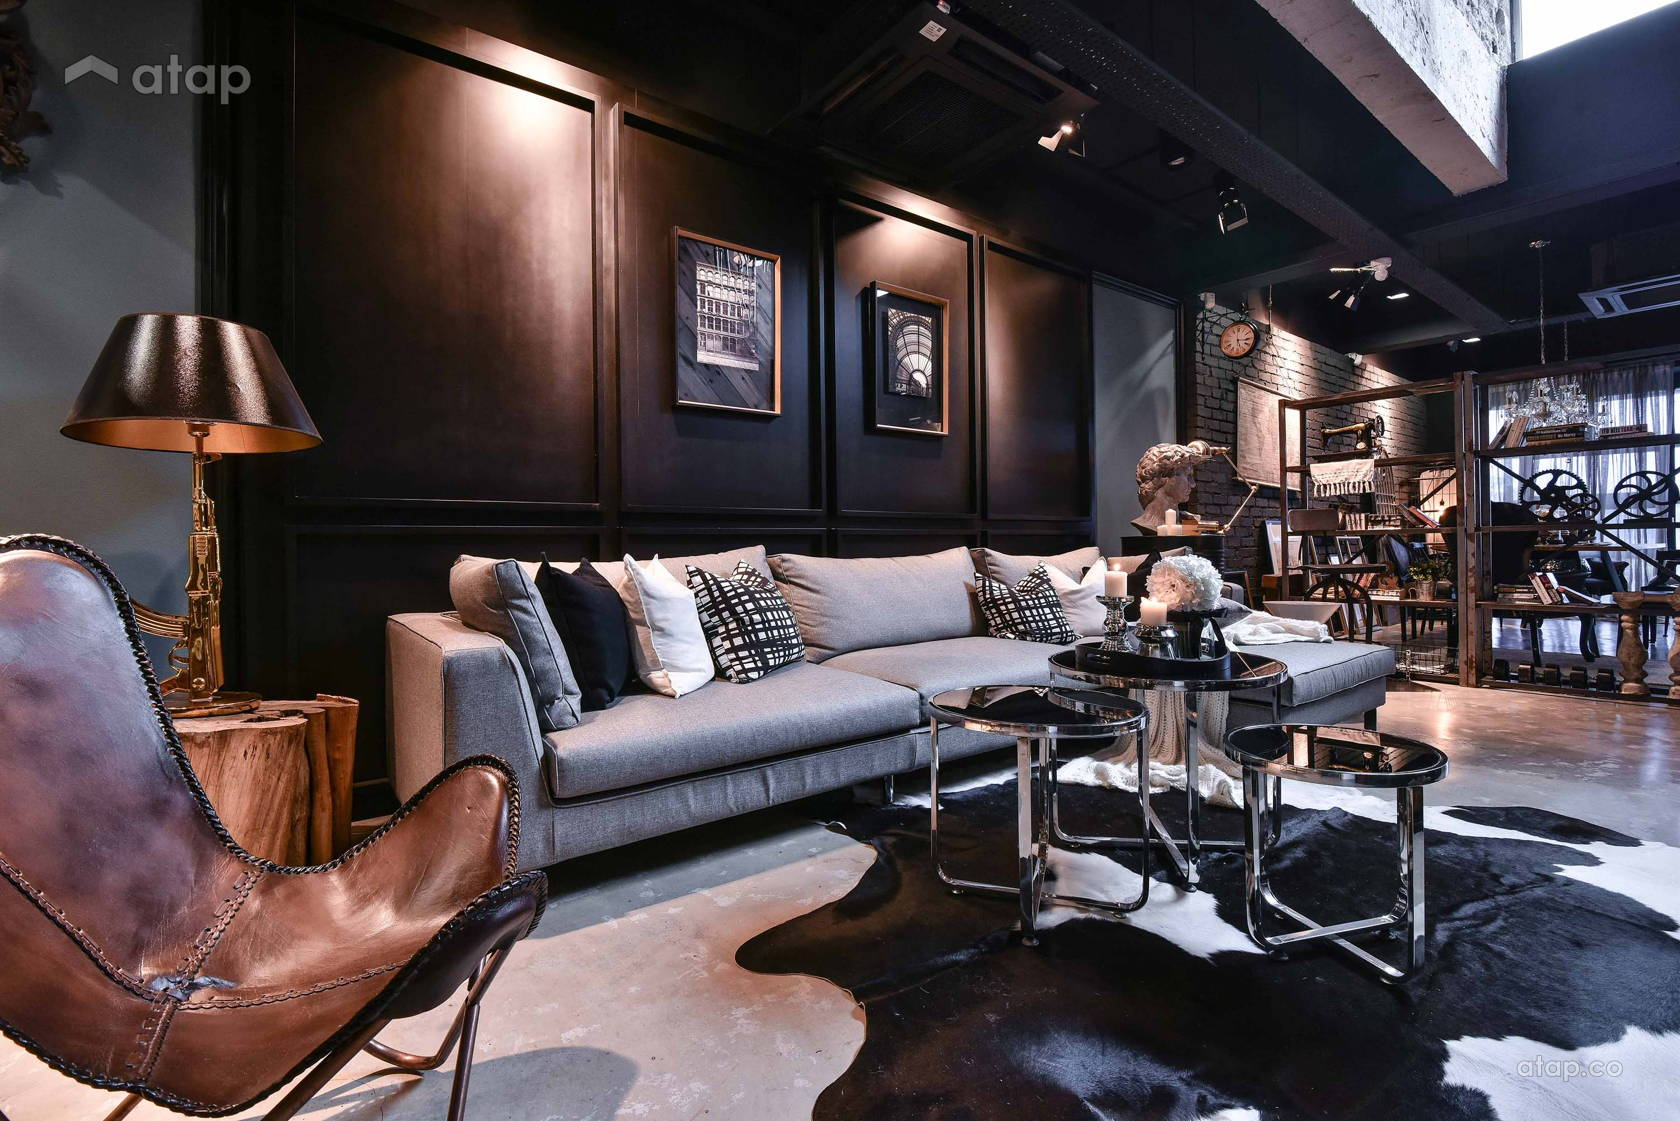 The Roof Lifestyle Concept Studio Interior Design Renovation Ideas Photos And Price In Malaysia Atap Co